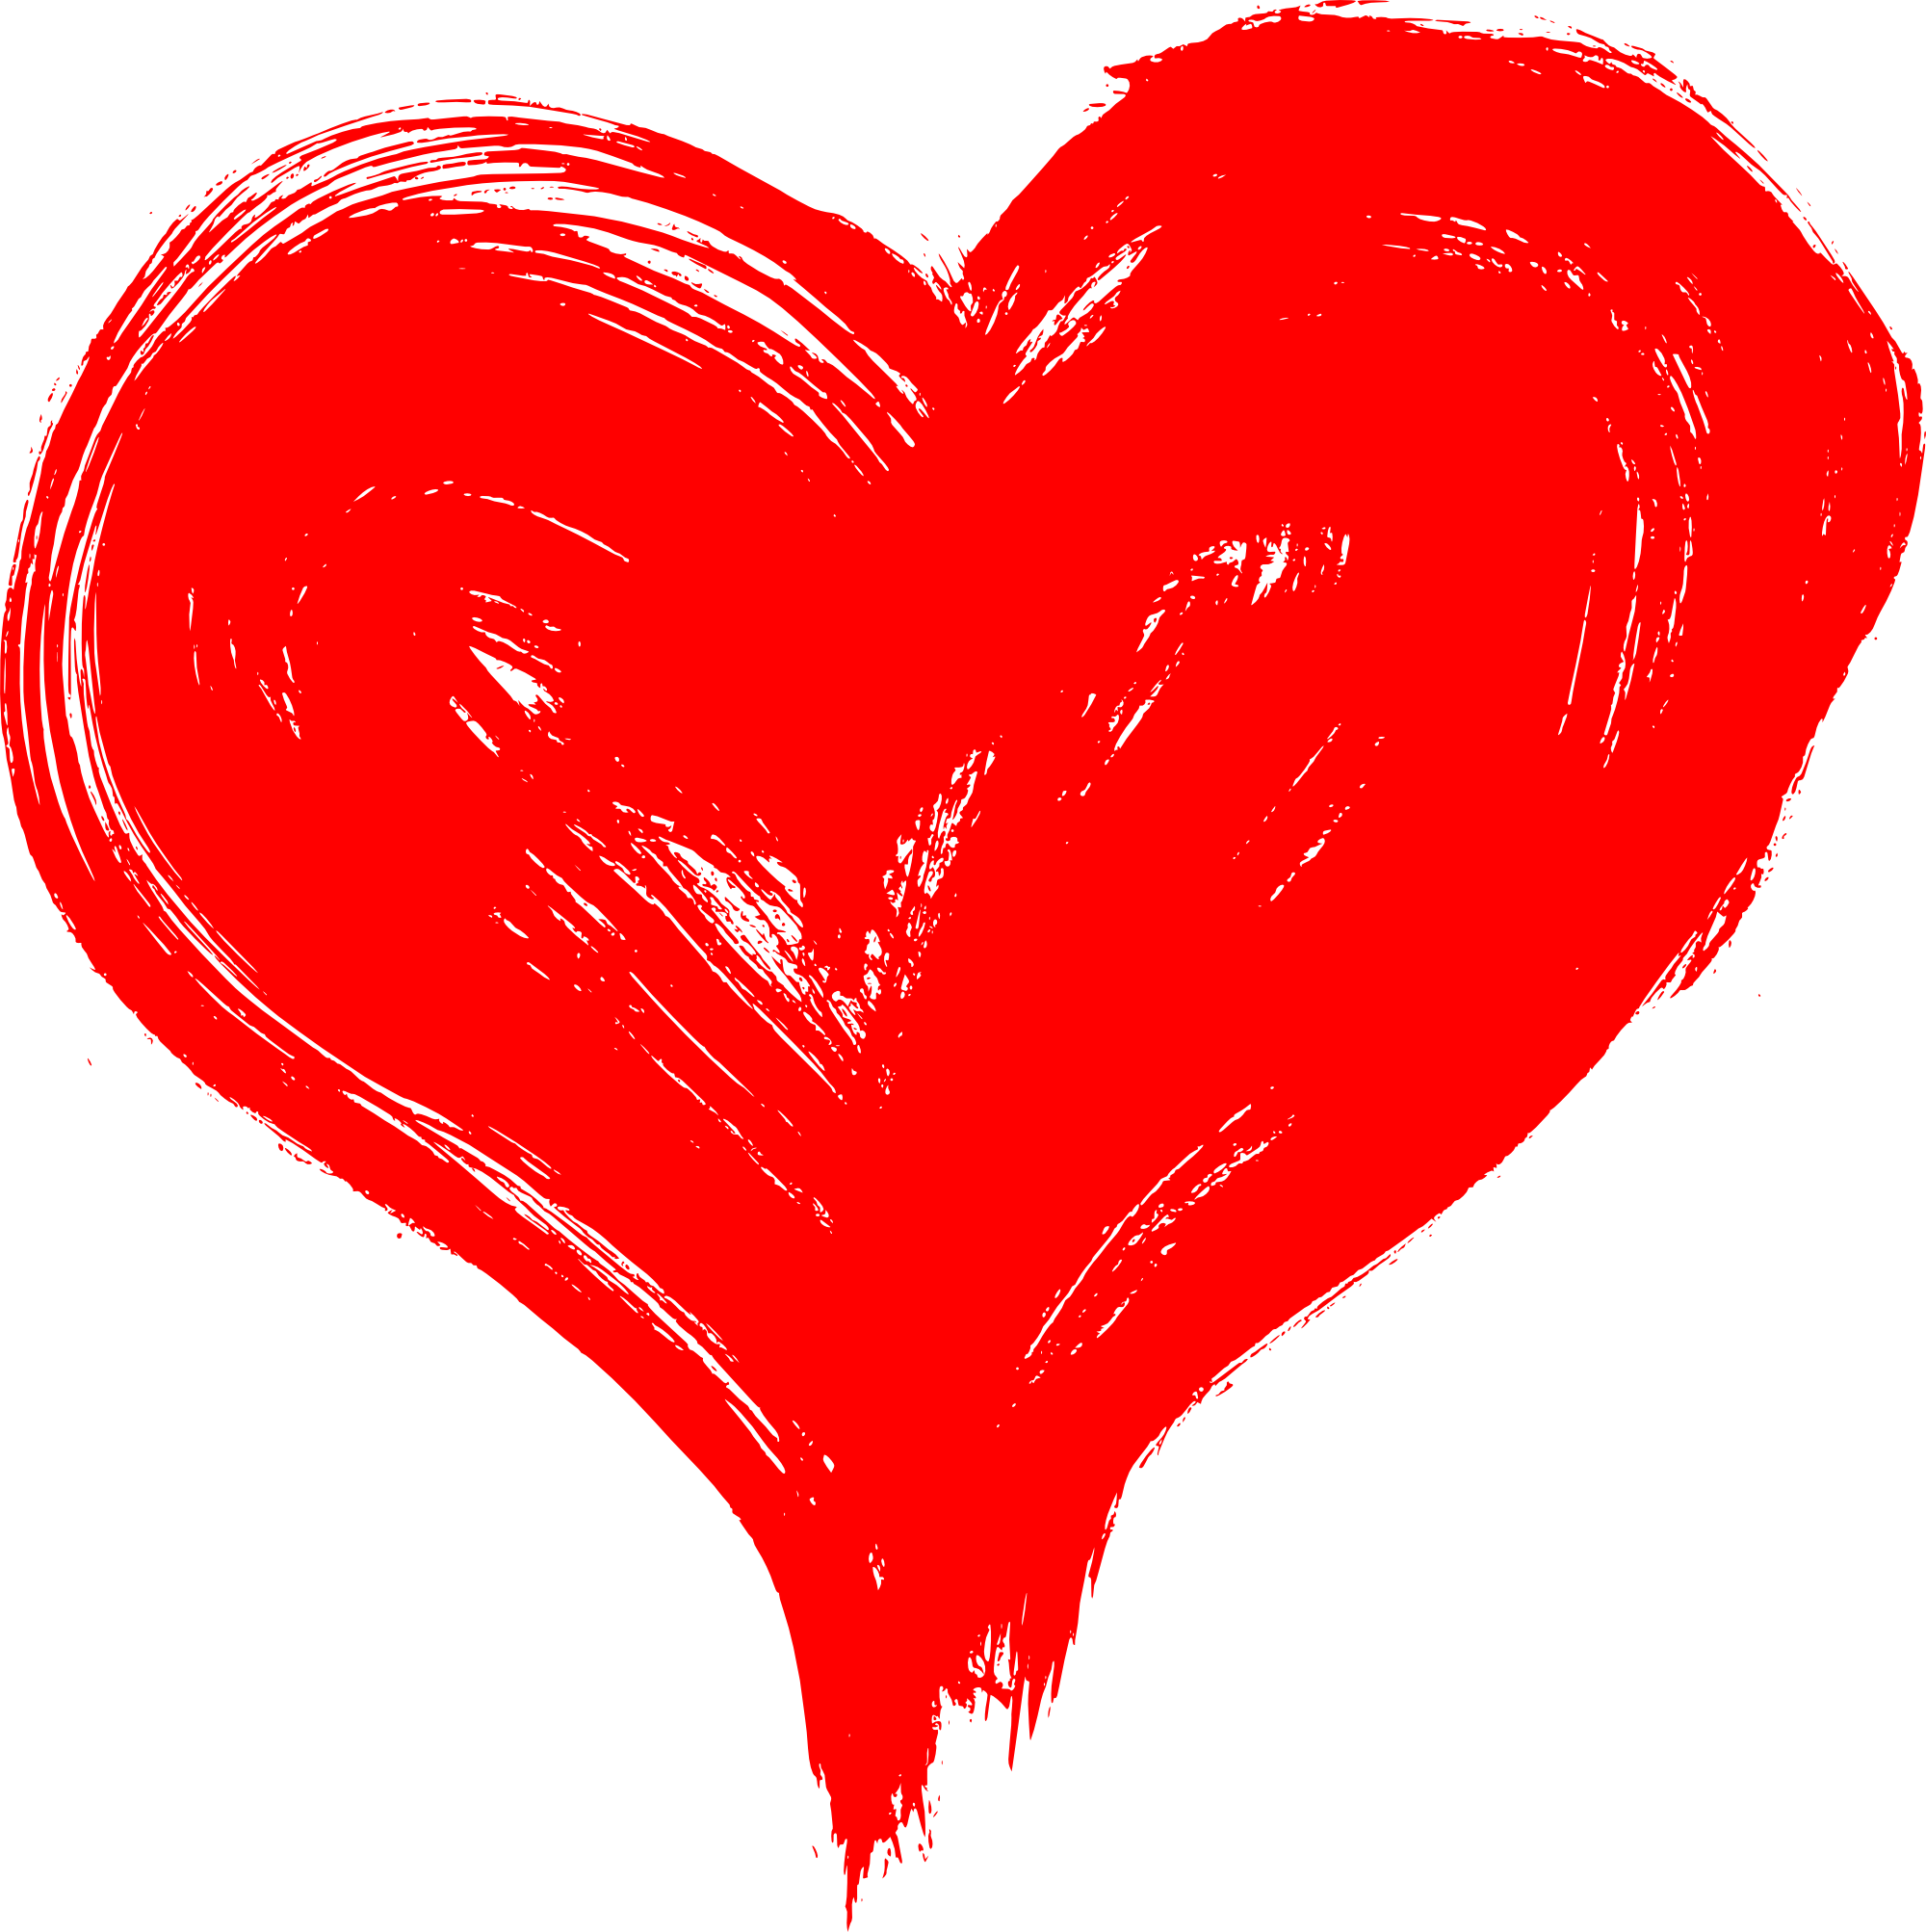 Heart art png